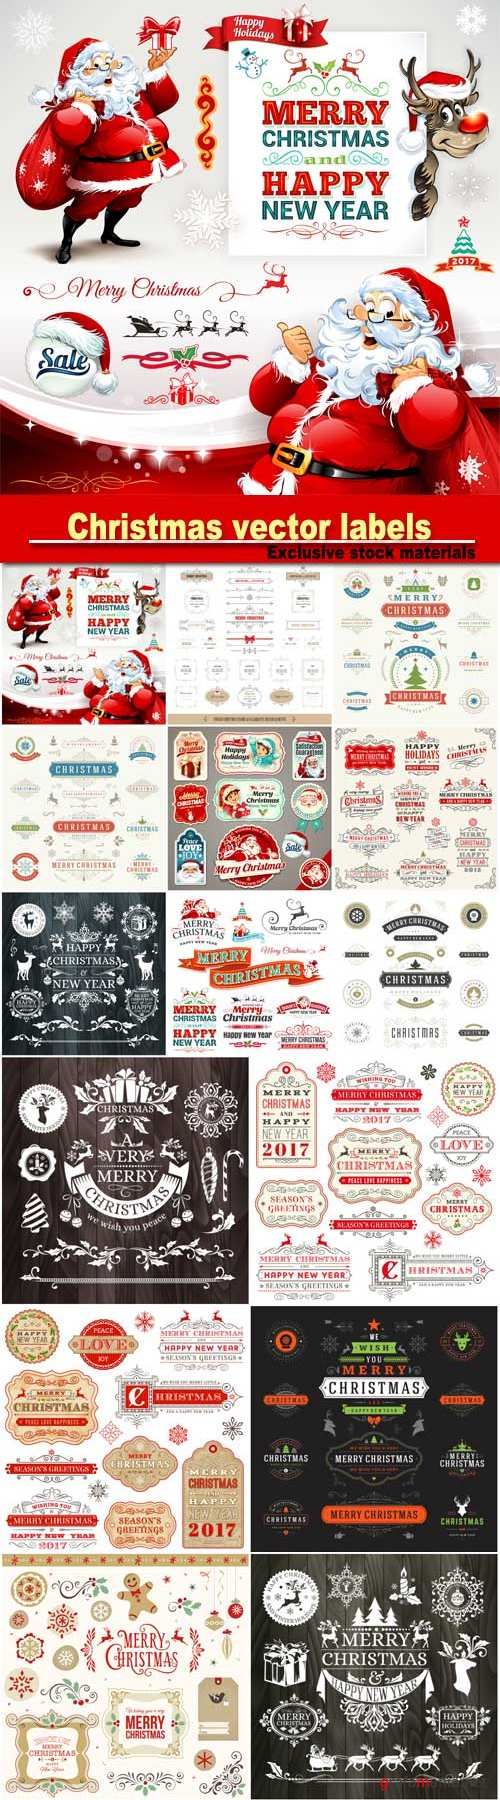 Collection of elegant christmas vector labels